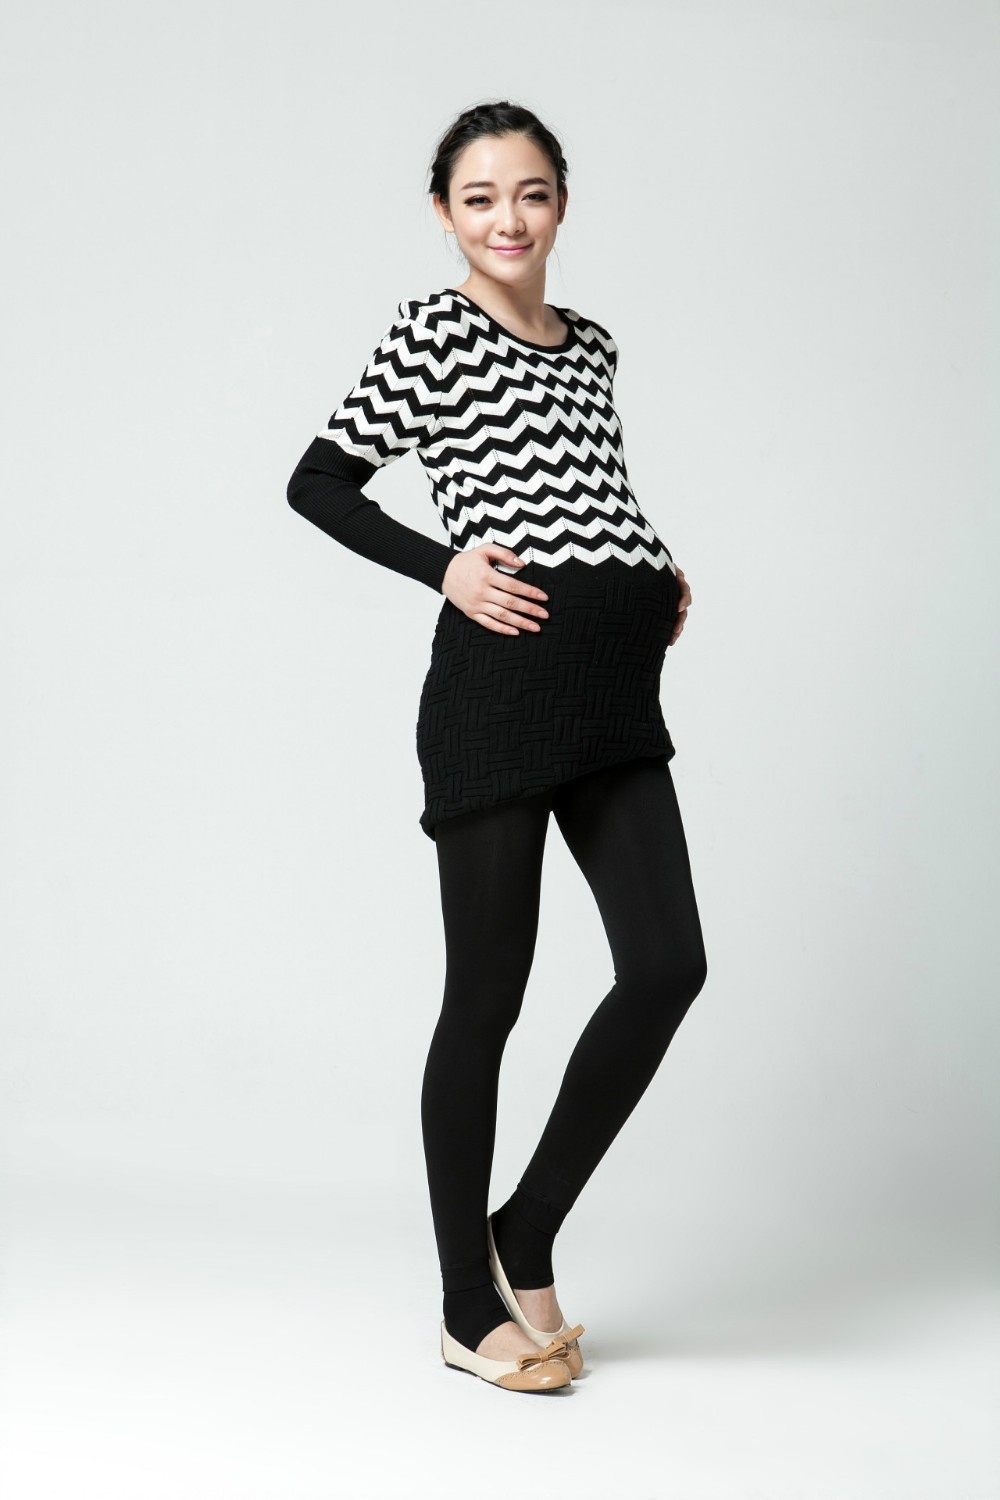 Women clothing maternity clothes winter Leggings thickened with velvet pregnant women trousers warm pants 6